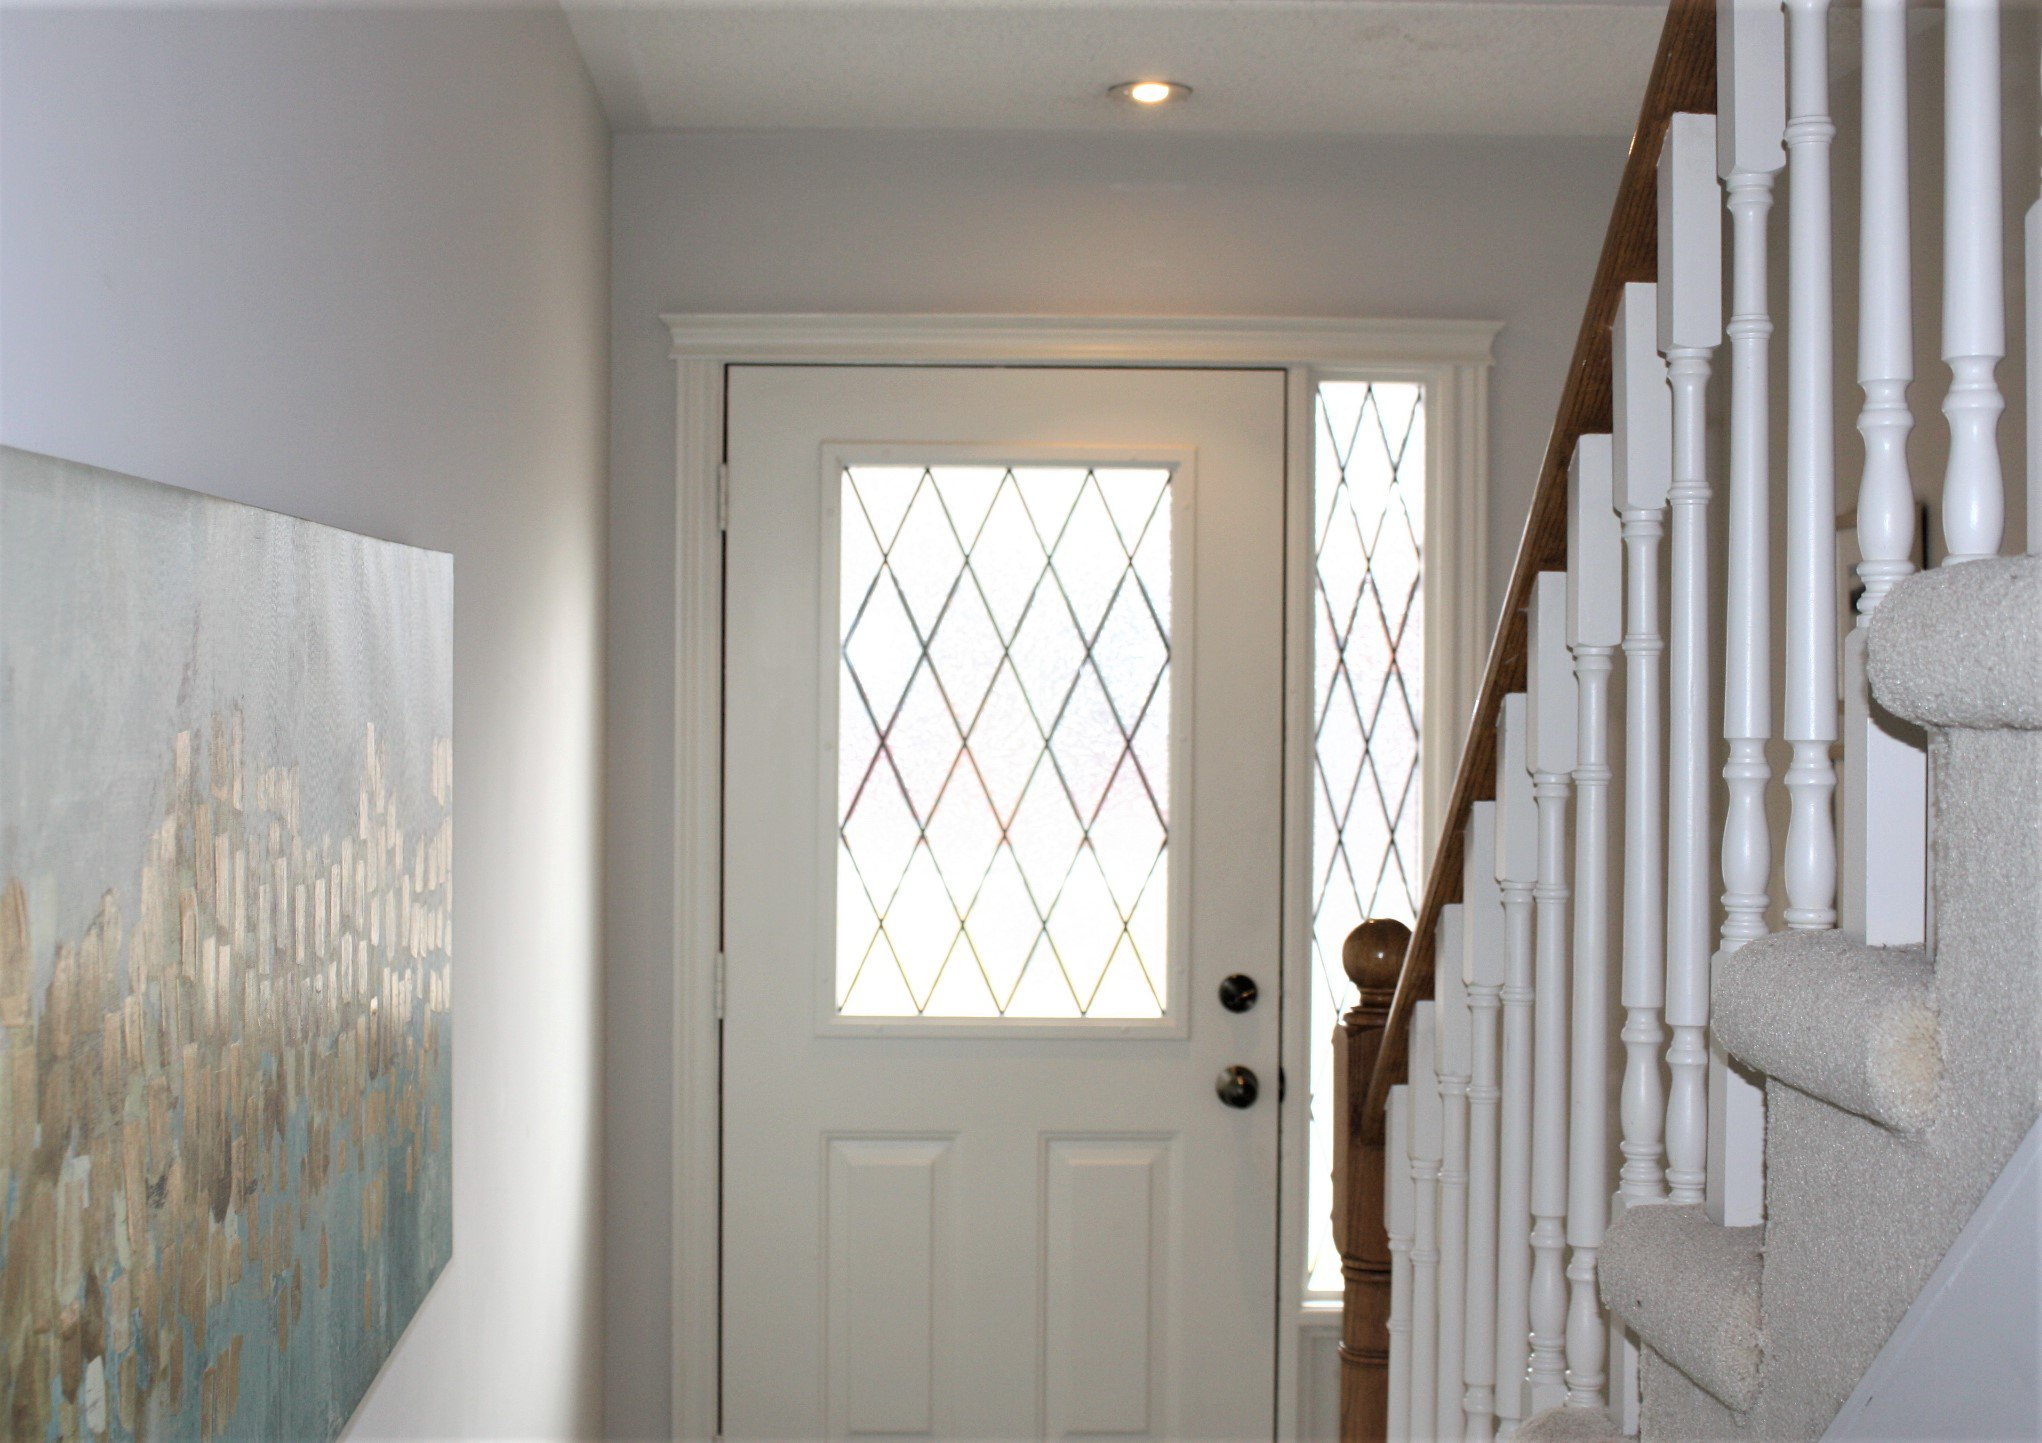 Photo 3: Photos: 113 245 Elgin Street in Cobourg: Residential Attached for sale : MLS®# 219780